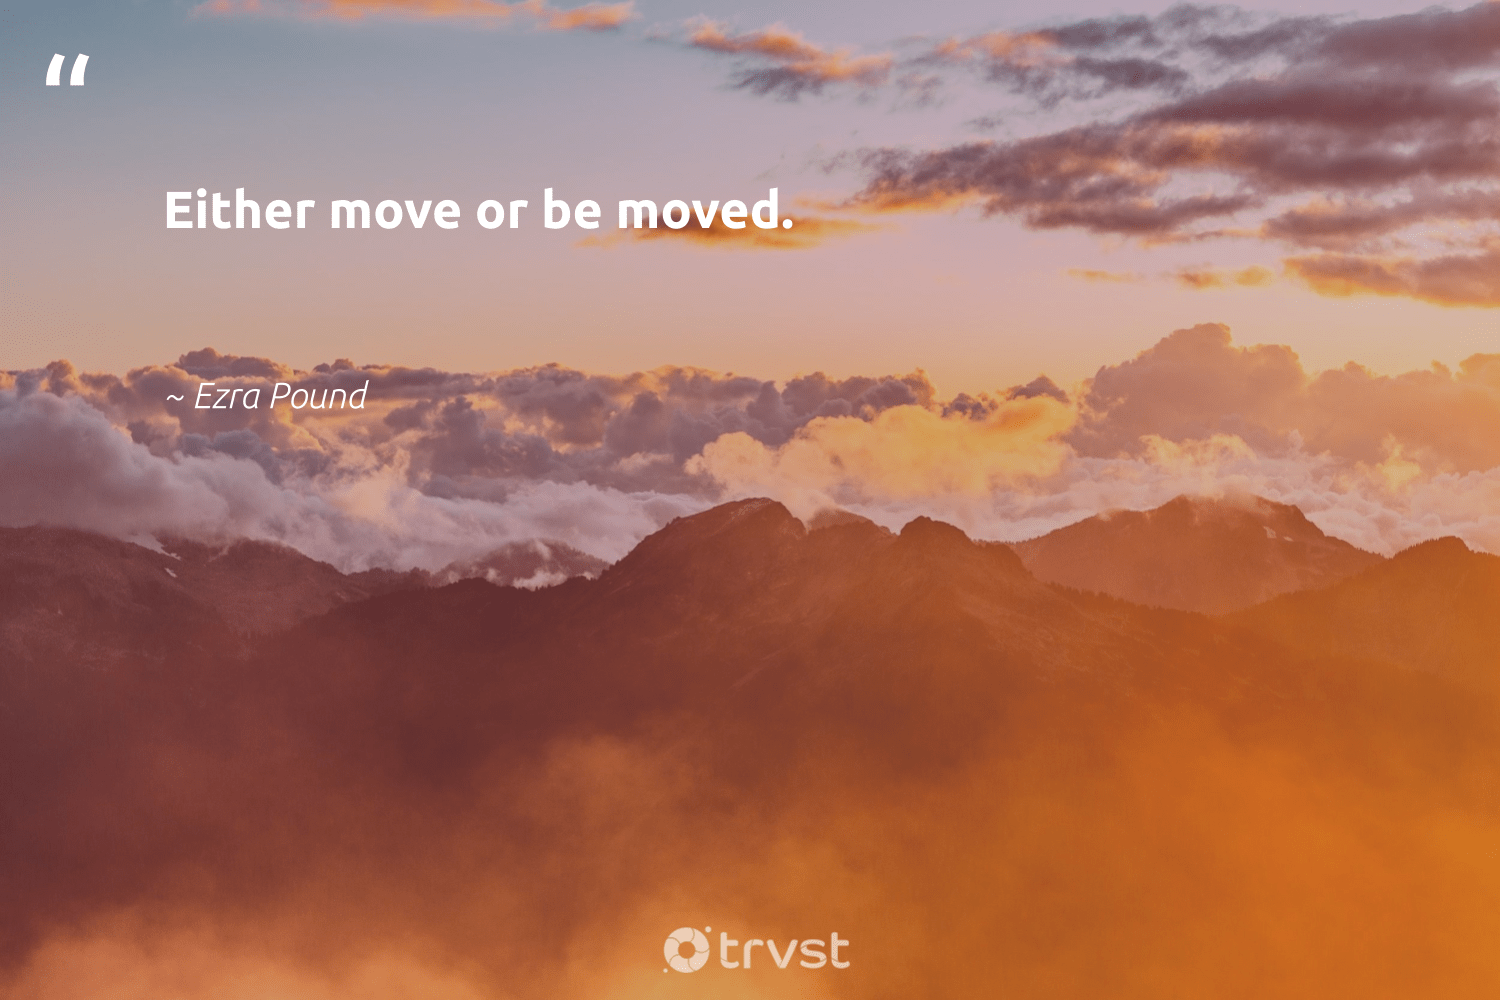 """""""Either move or be moved.""""  - Ezra Pound #trvst #quotes #nevergiveup #collectiveaction #futureofwork #dosomething #begreat #socialimpact #softskills #dotherightthing #impact #bethechange"""